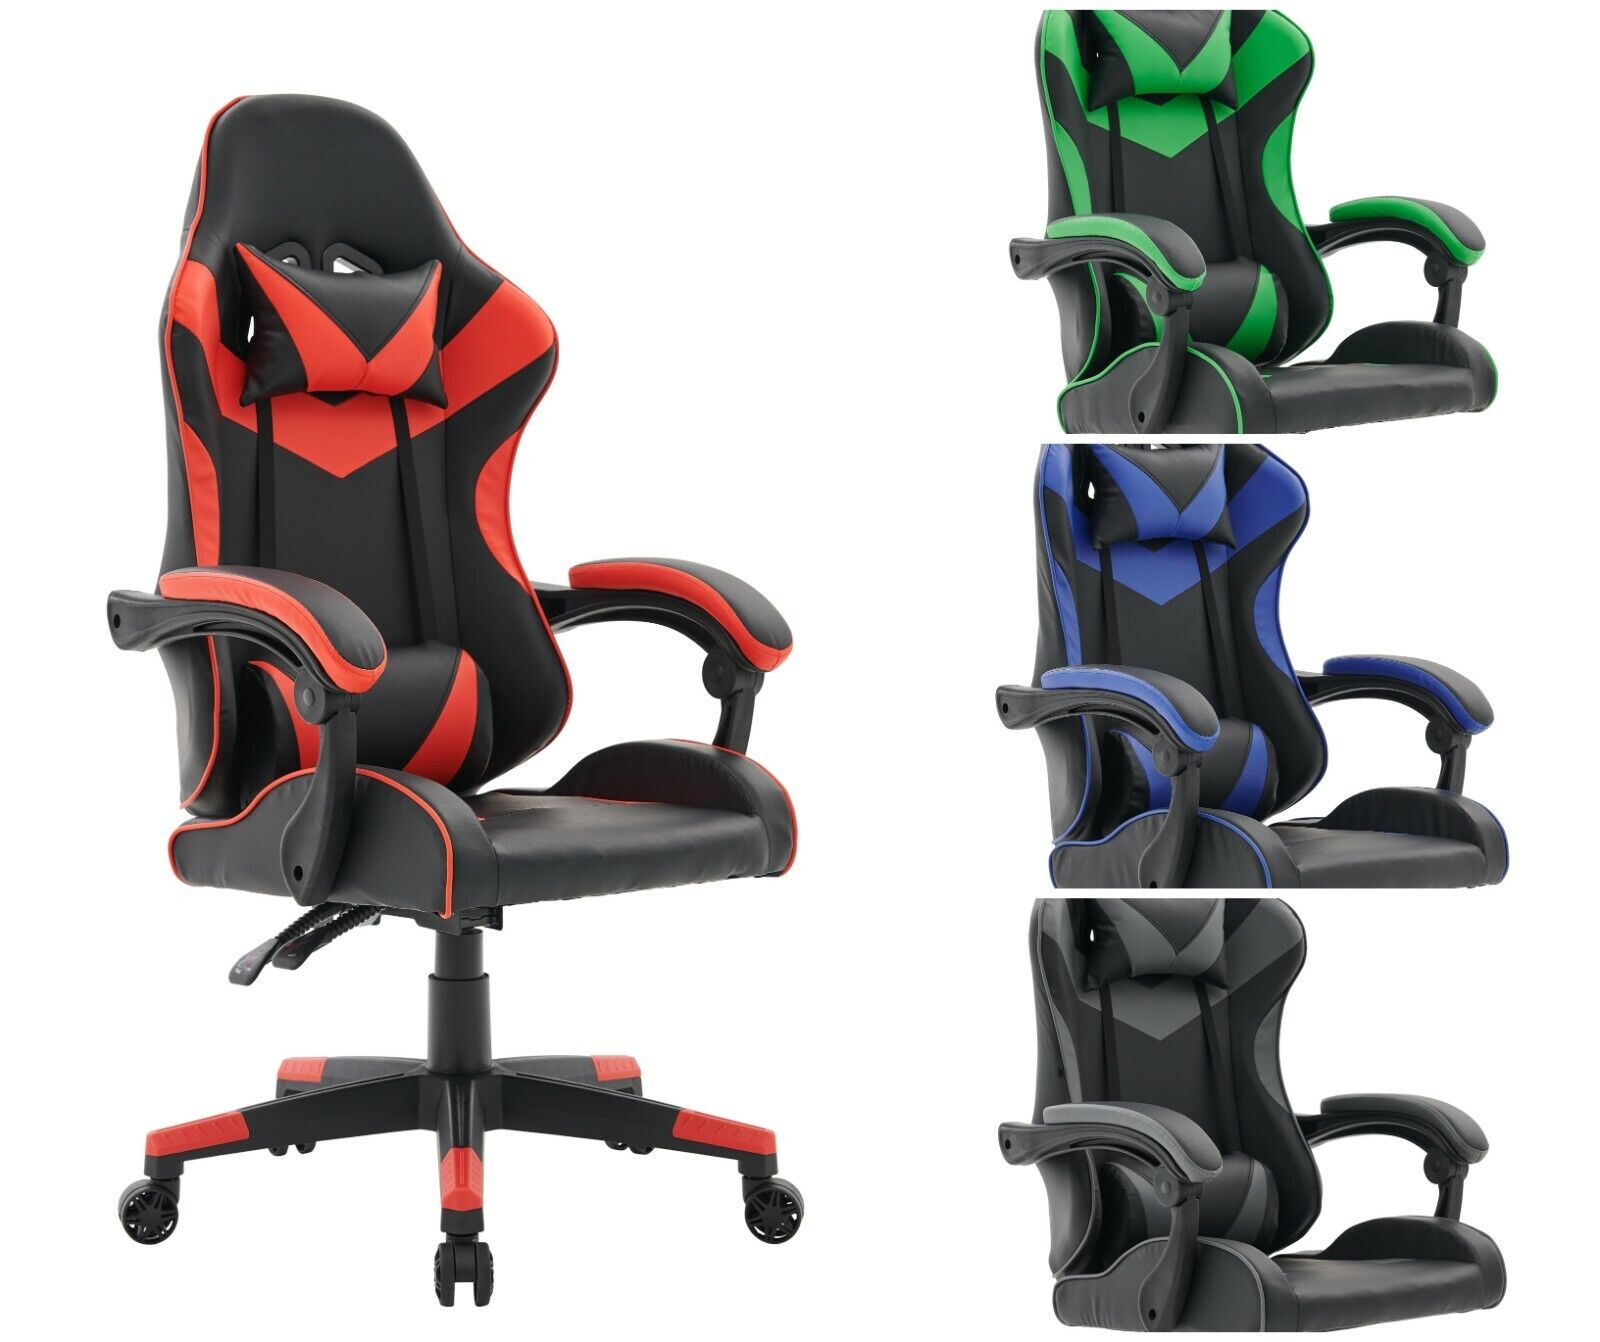 Computer Games - Gaming Computer Chair Ergonomic Adjustable Swivel Recliner Laptop Office Chair